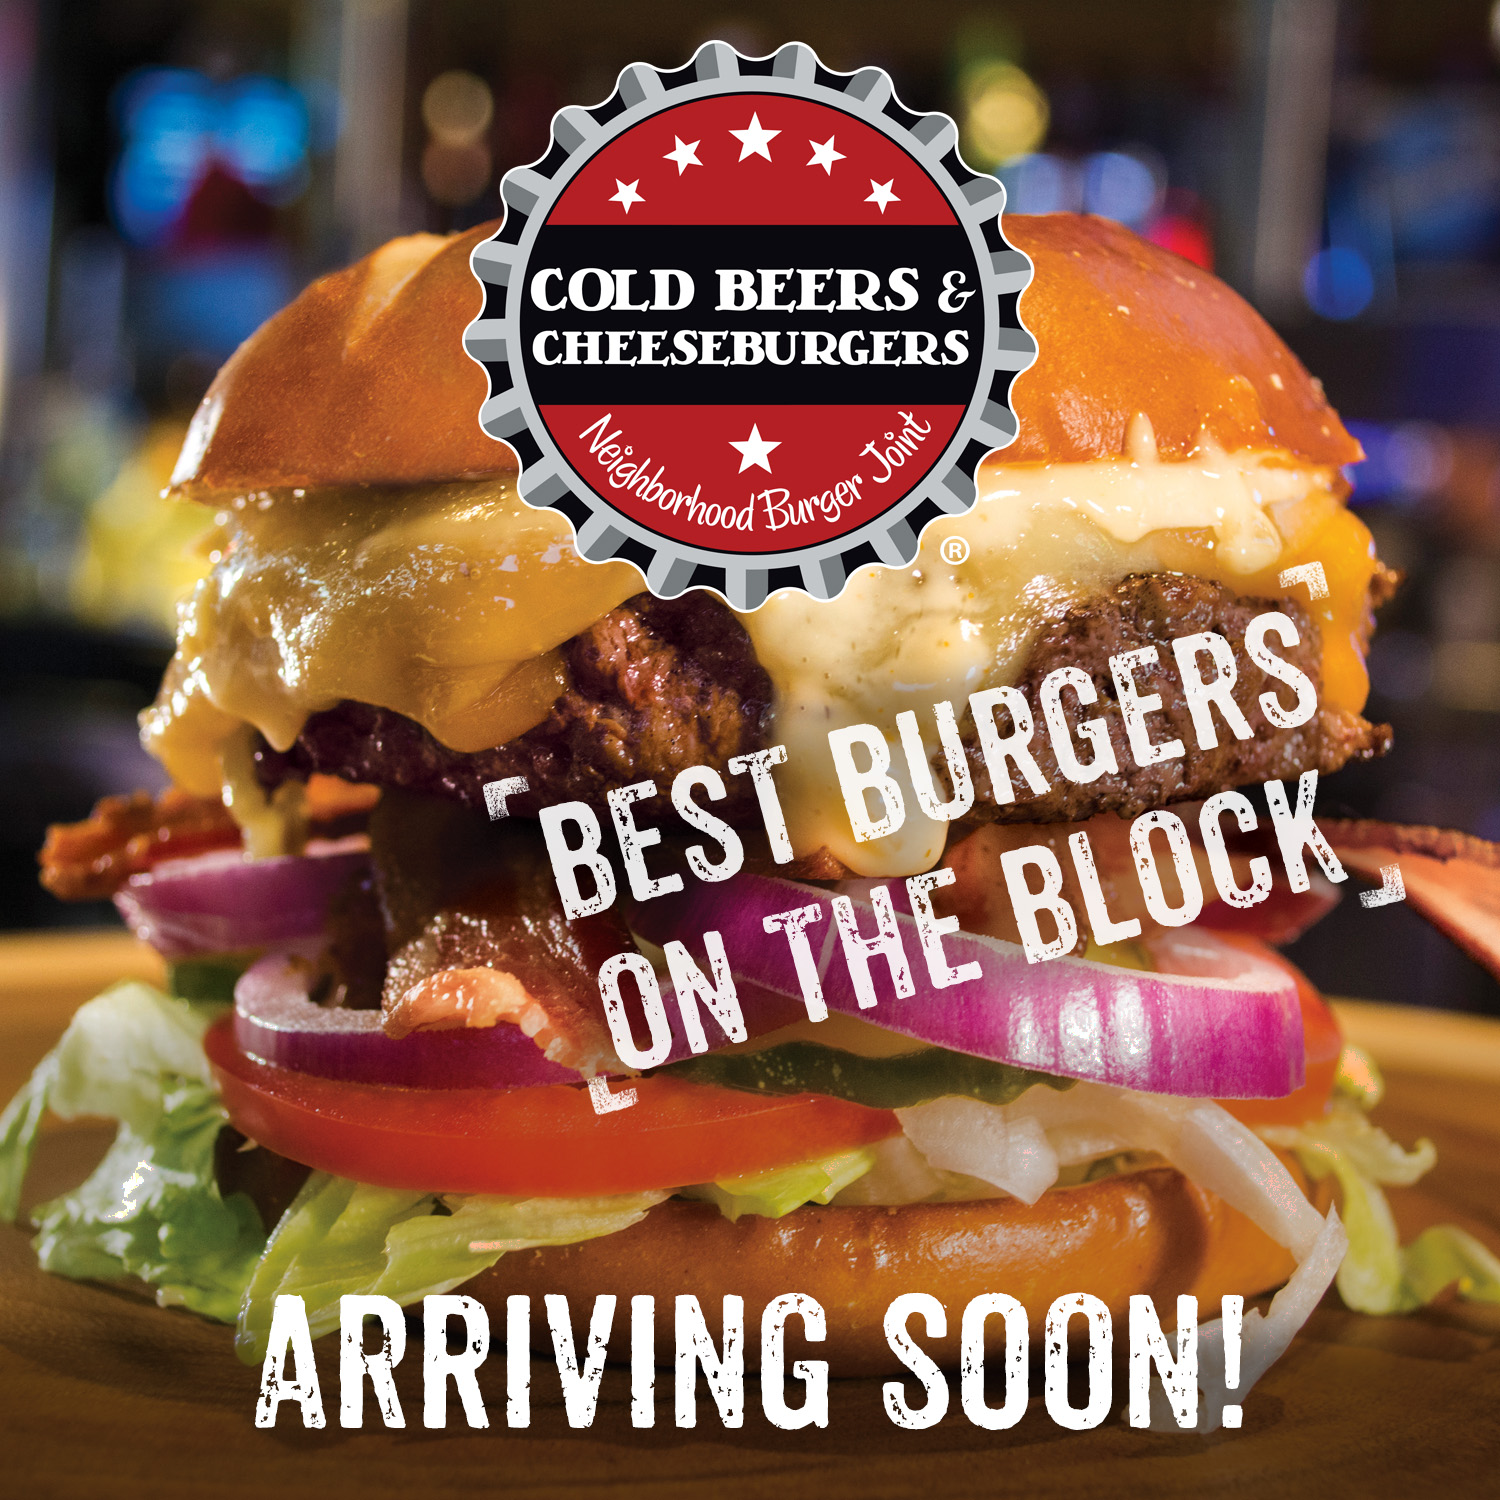 Cold Beers & Cheeseburgers coming soon graphic